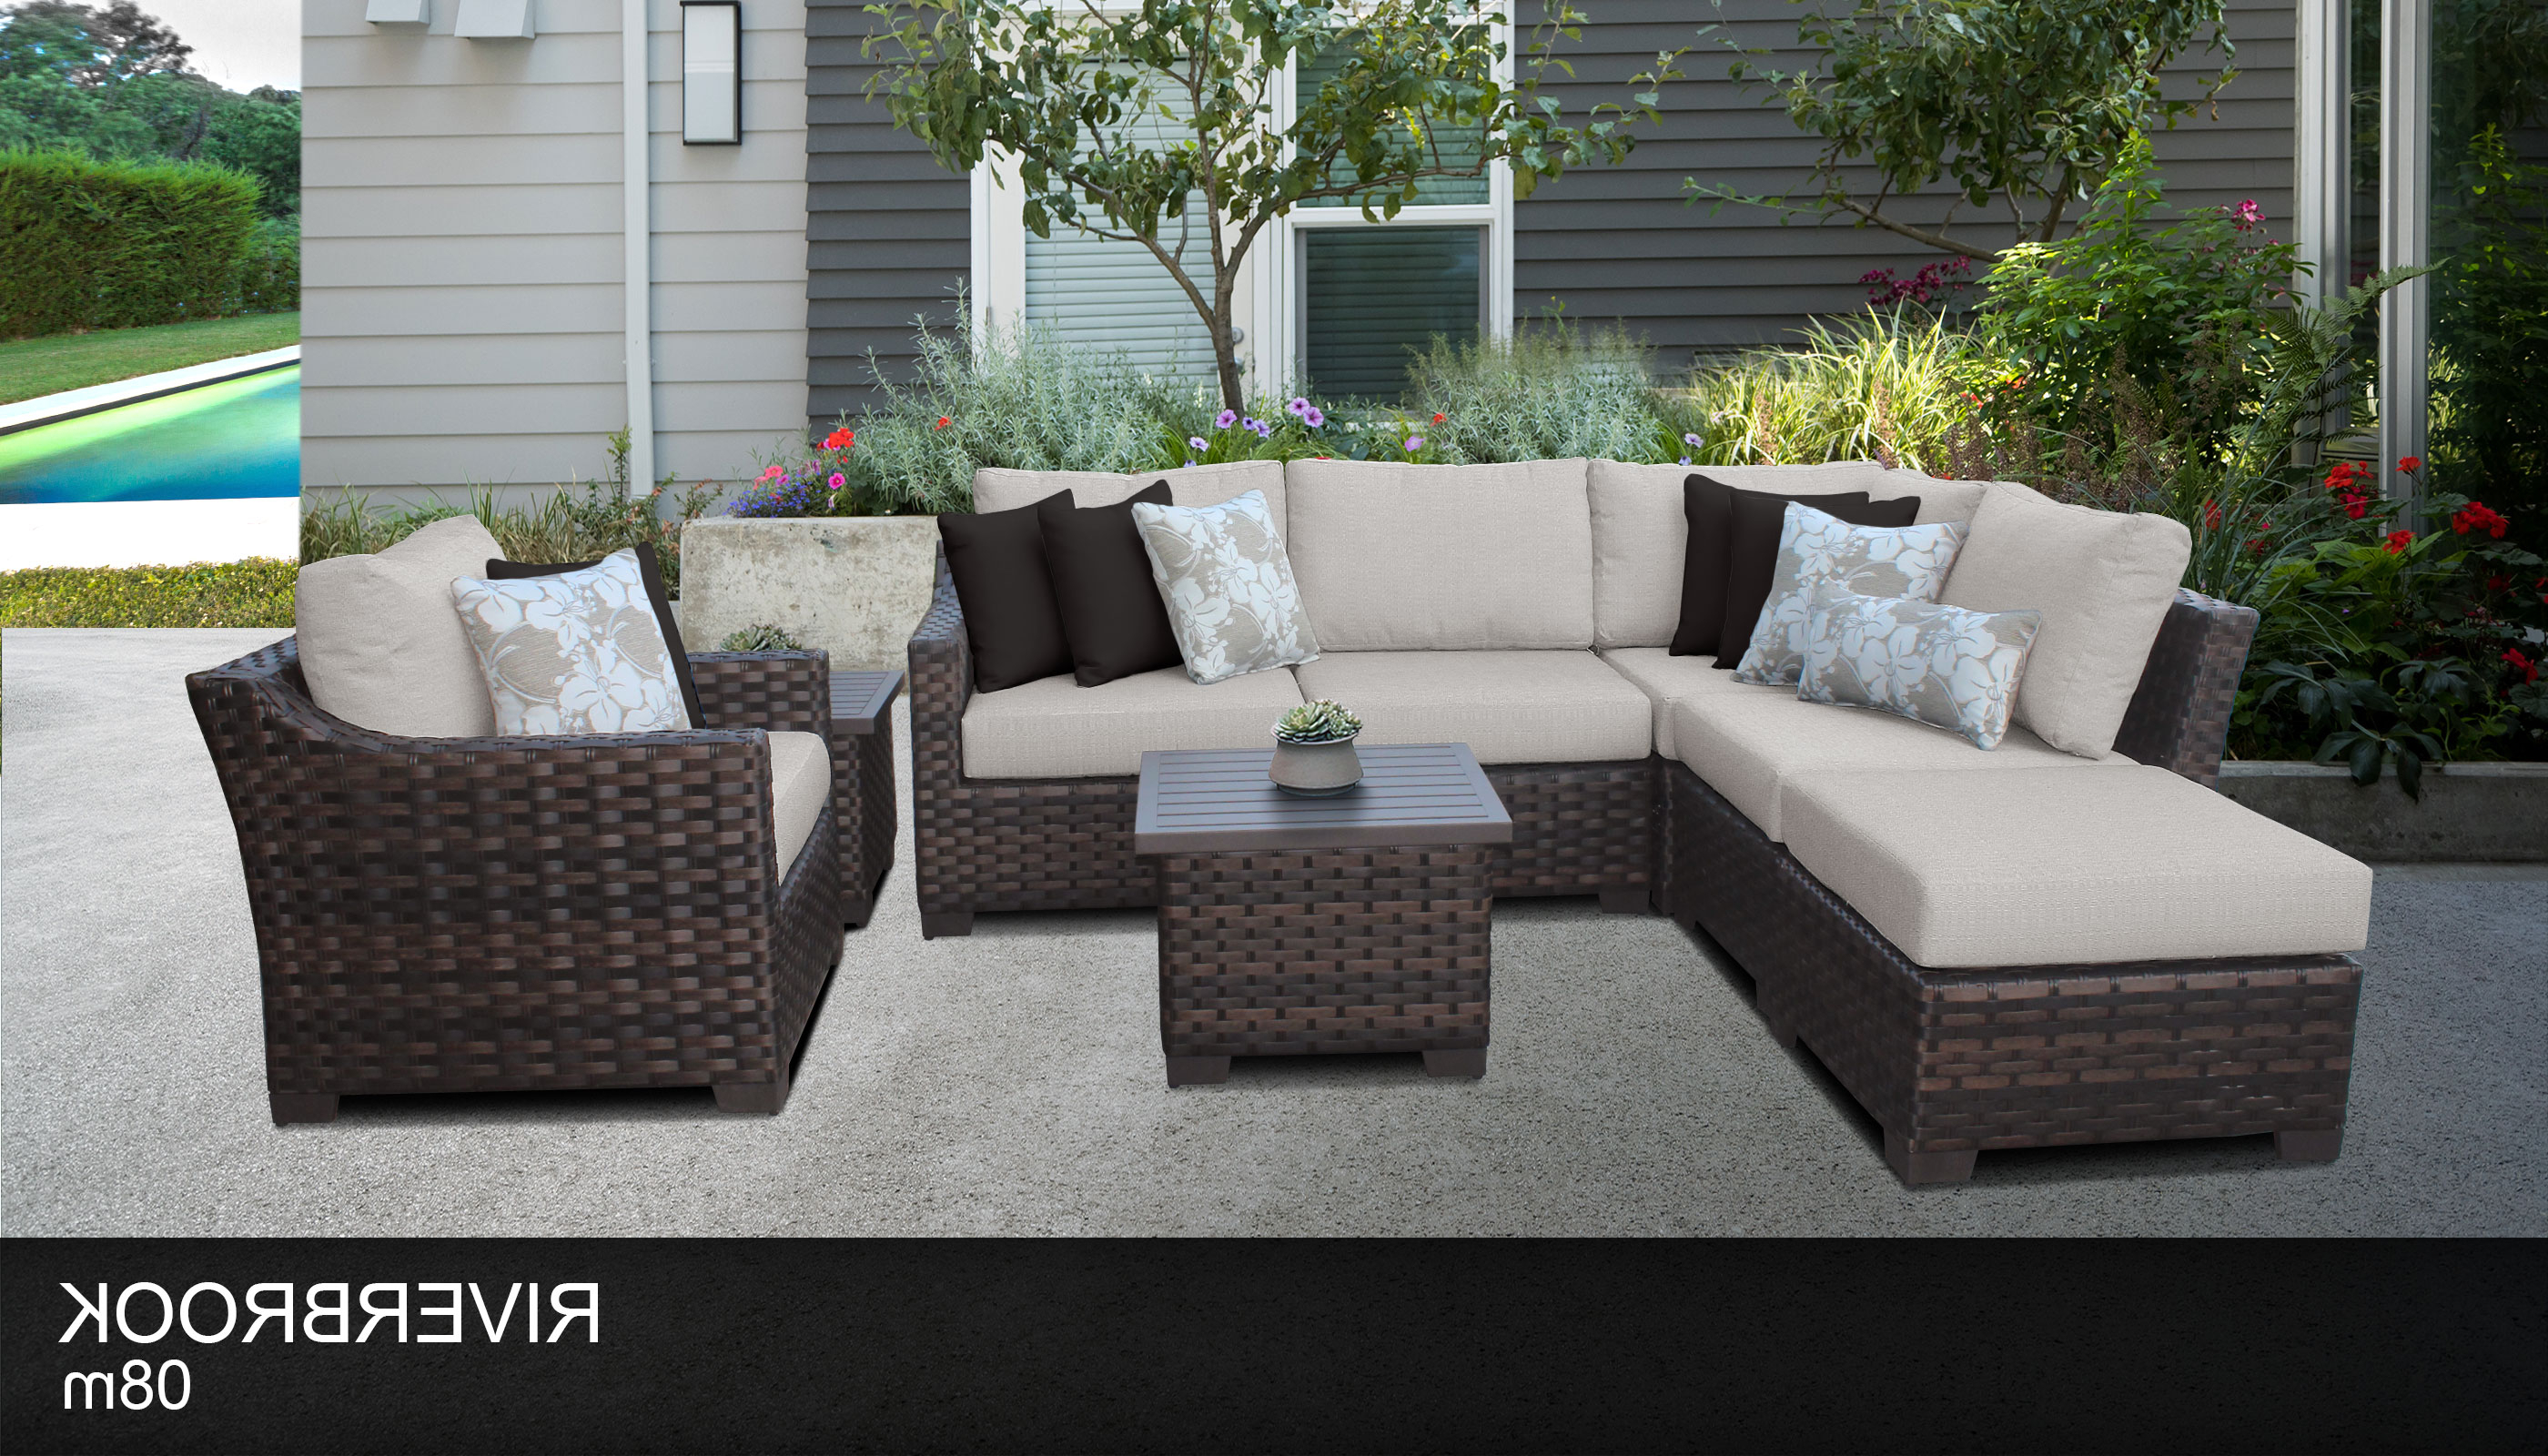 Design Furnishings In Current Oreland Patio Sofas With Cushions (View 5 of 20)